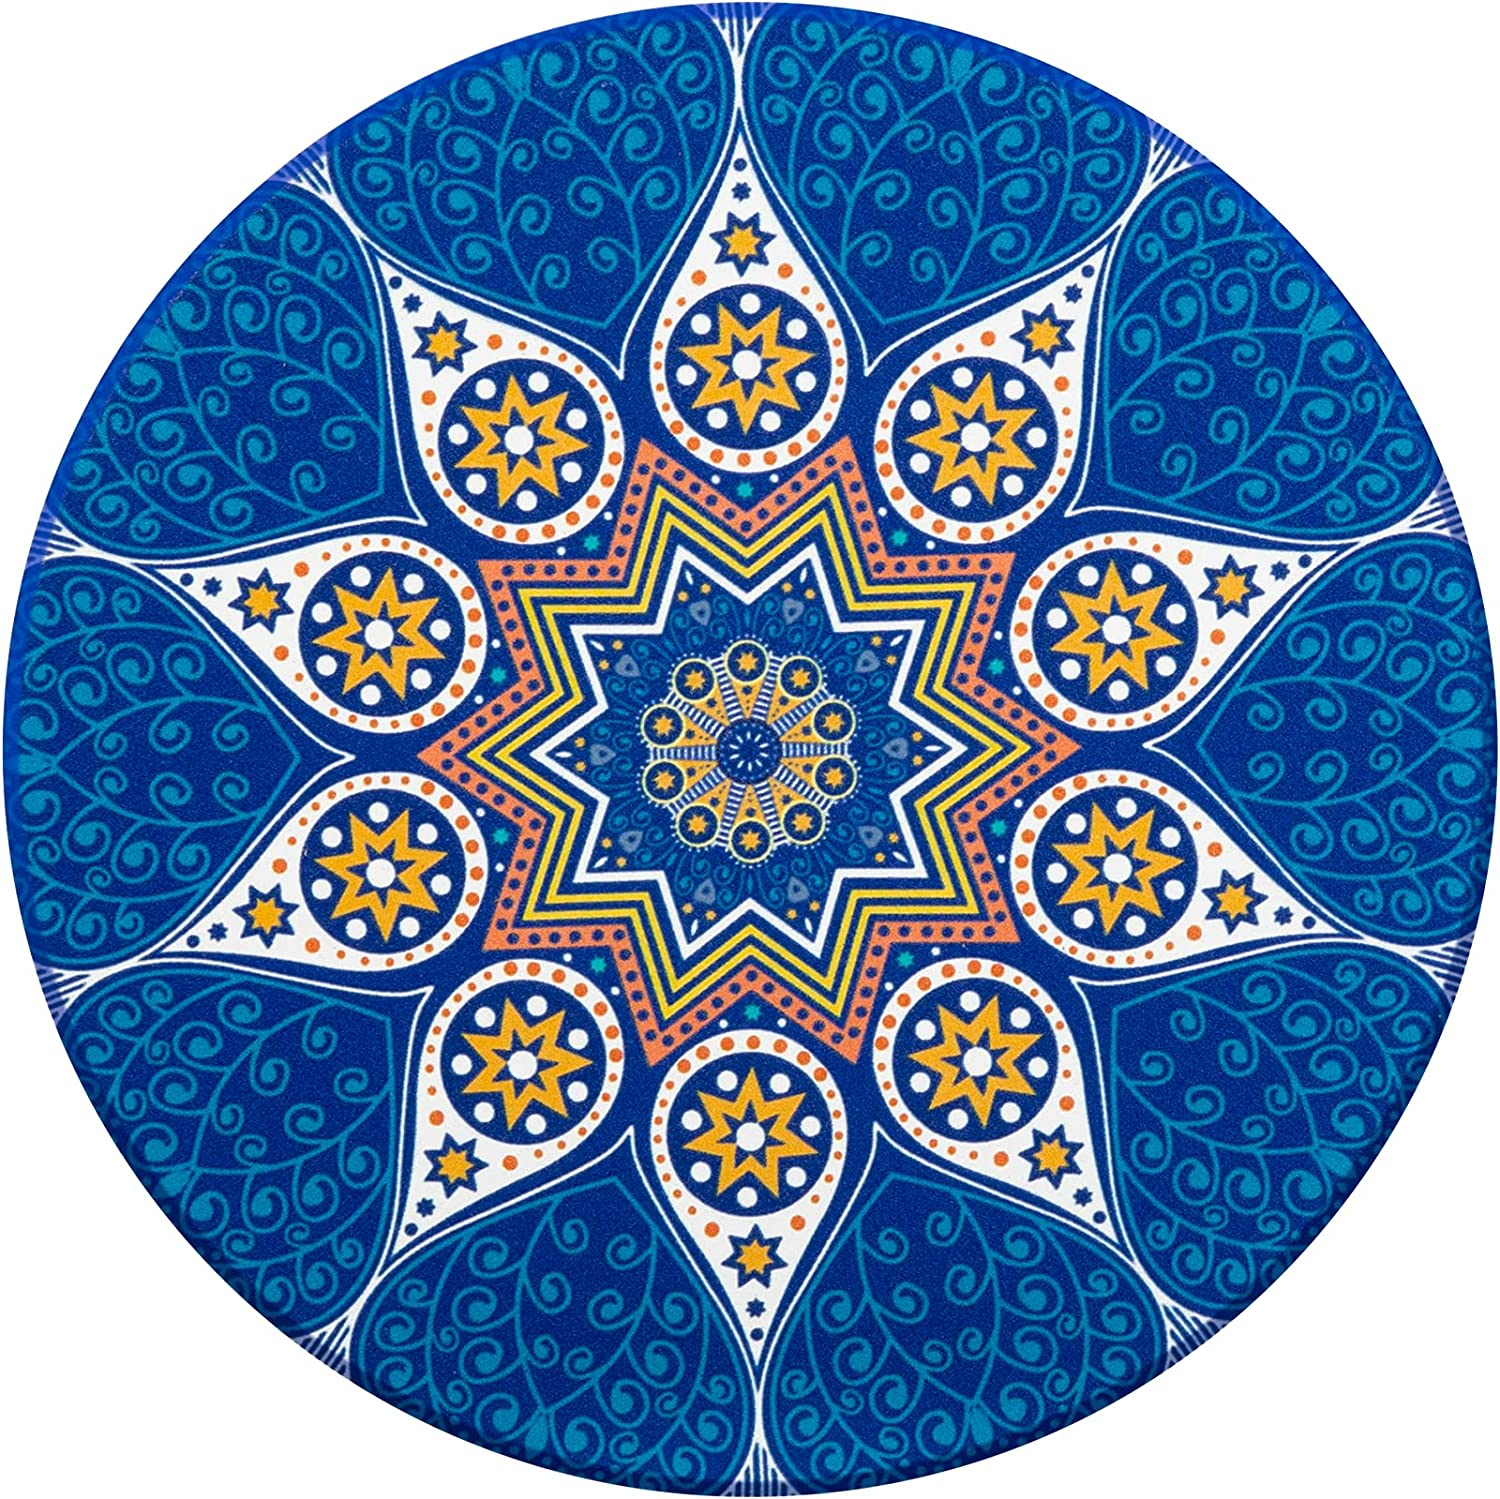 Urbanstrive Mandala Ceramic Coaster for Drinks Absorbent Coasters with Cork Base Stone Coasters Set for Wooden Table, Great Home and Dining Room Decor, Housewarming Gift, One Pack, Sea Blue